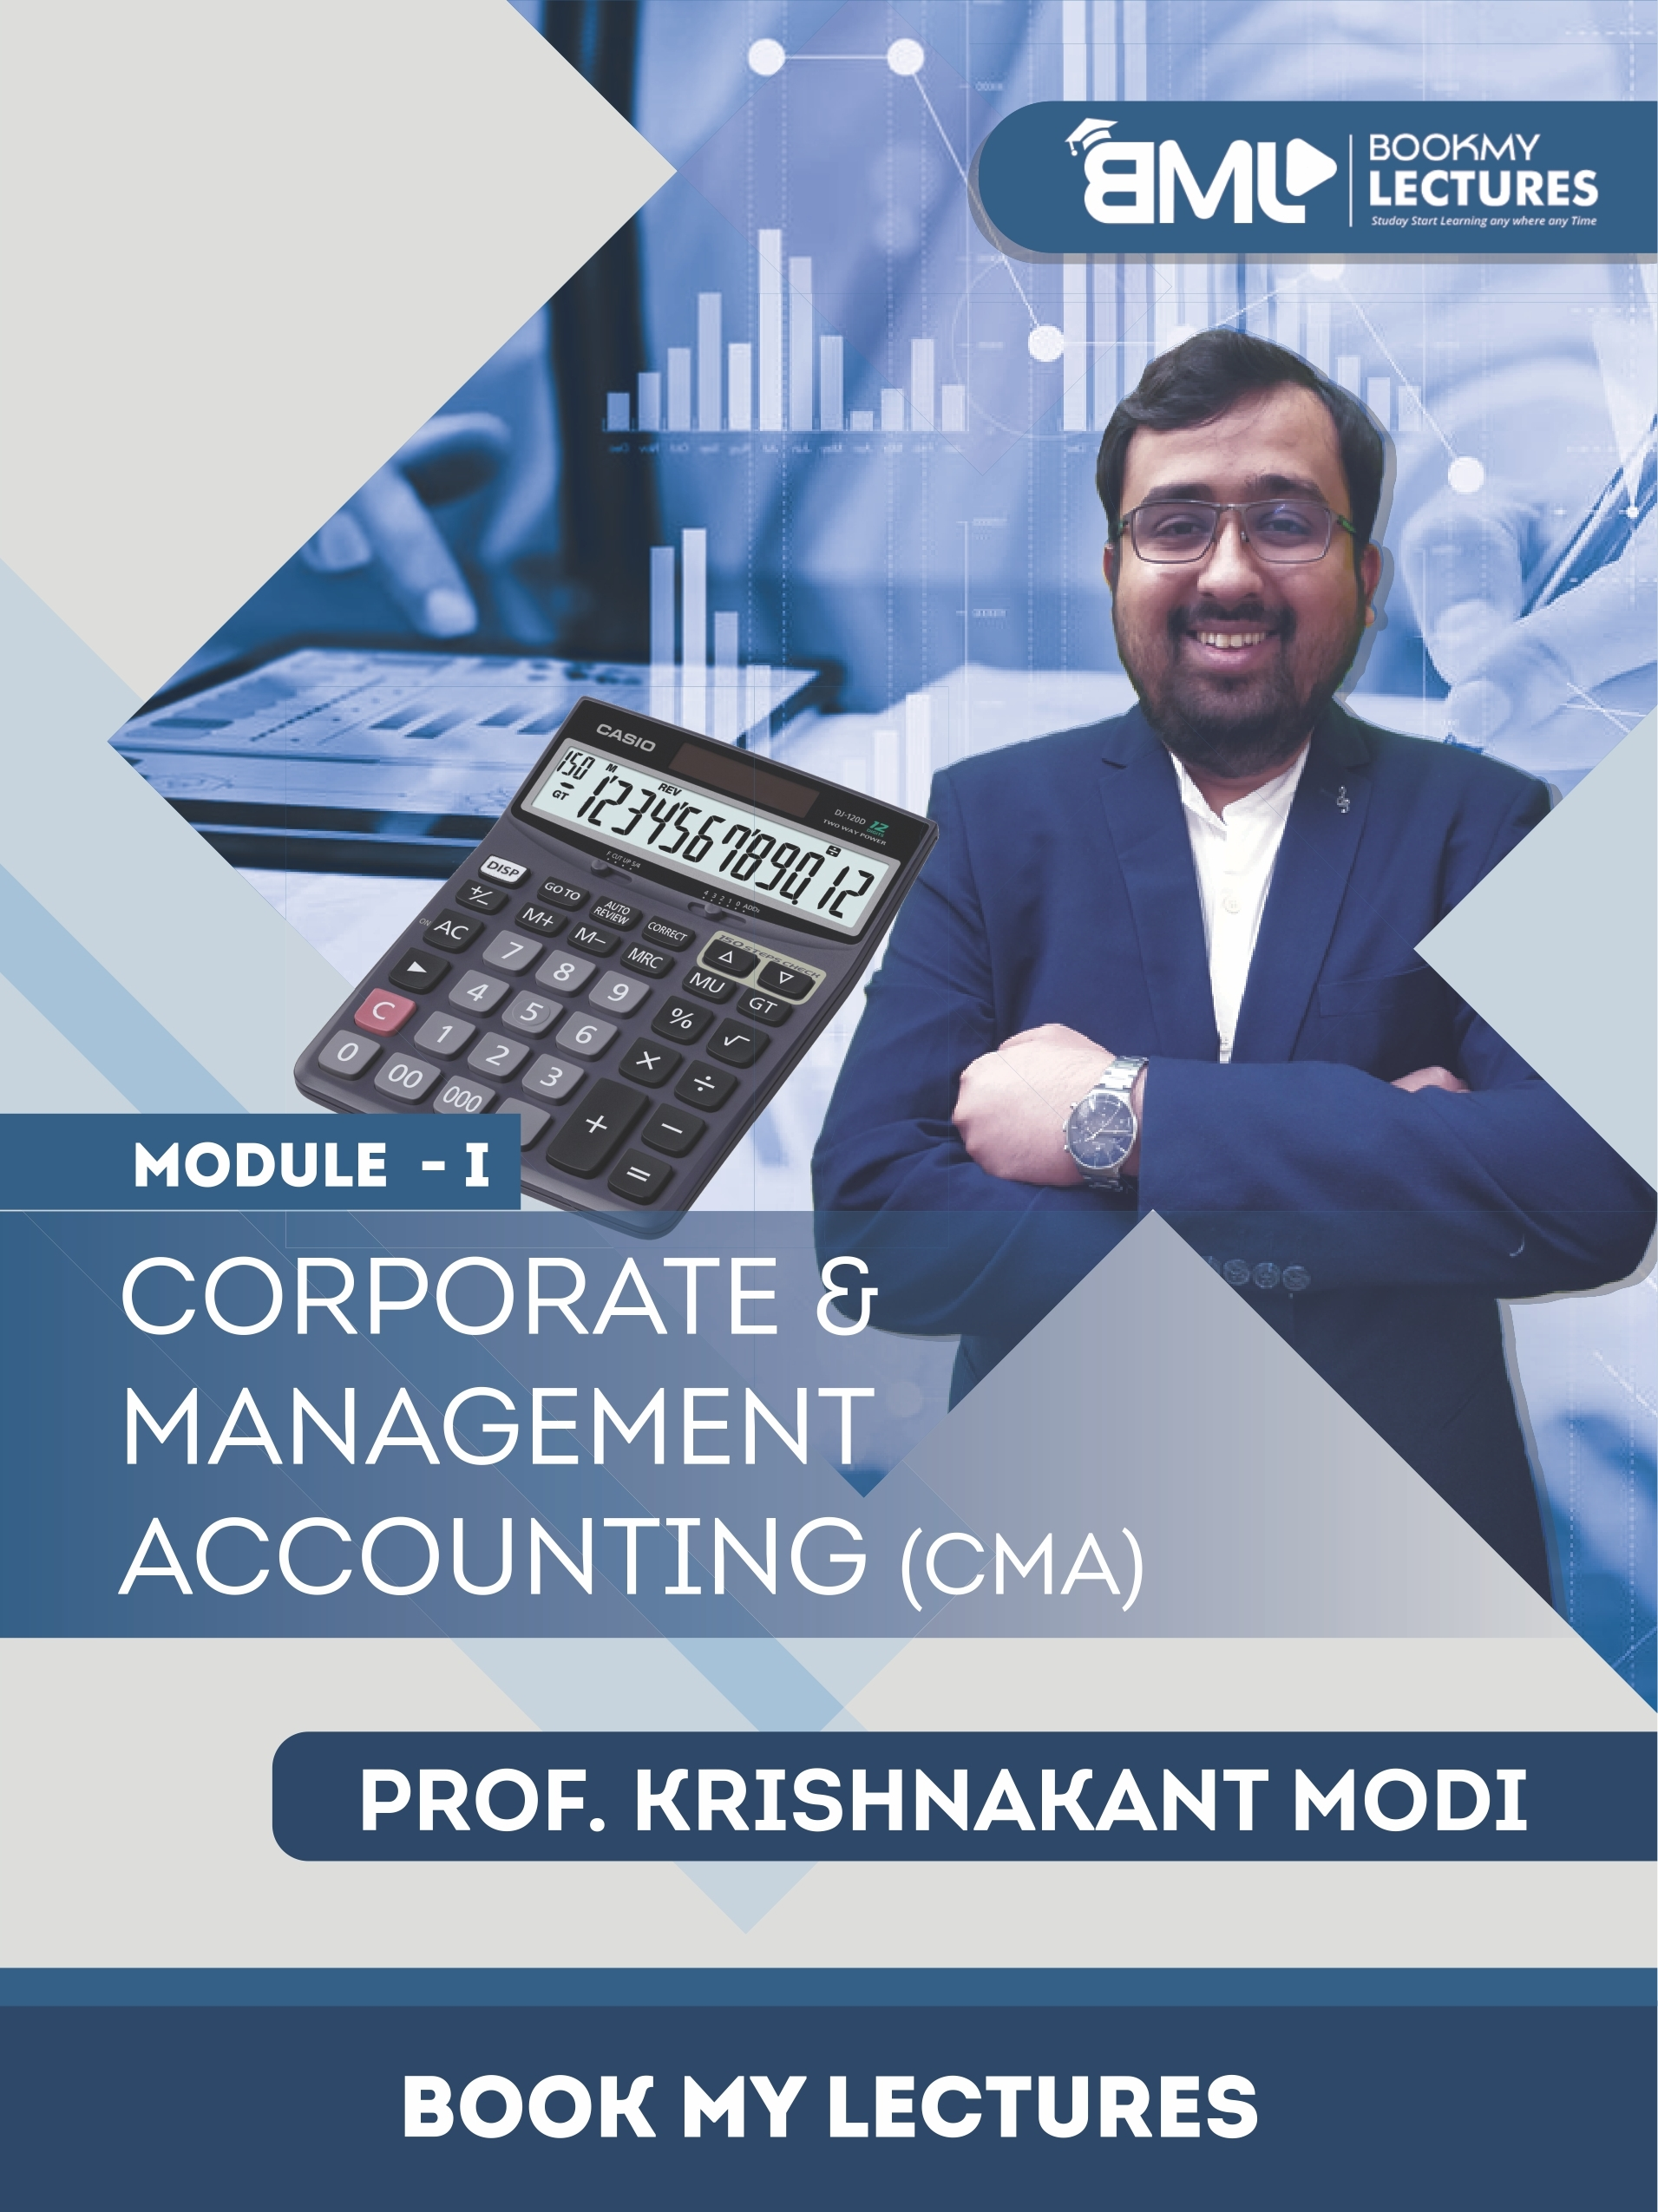 Corporate & Management Accounting (CMA) video lectures by Krishnakant Modi